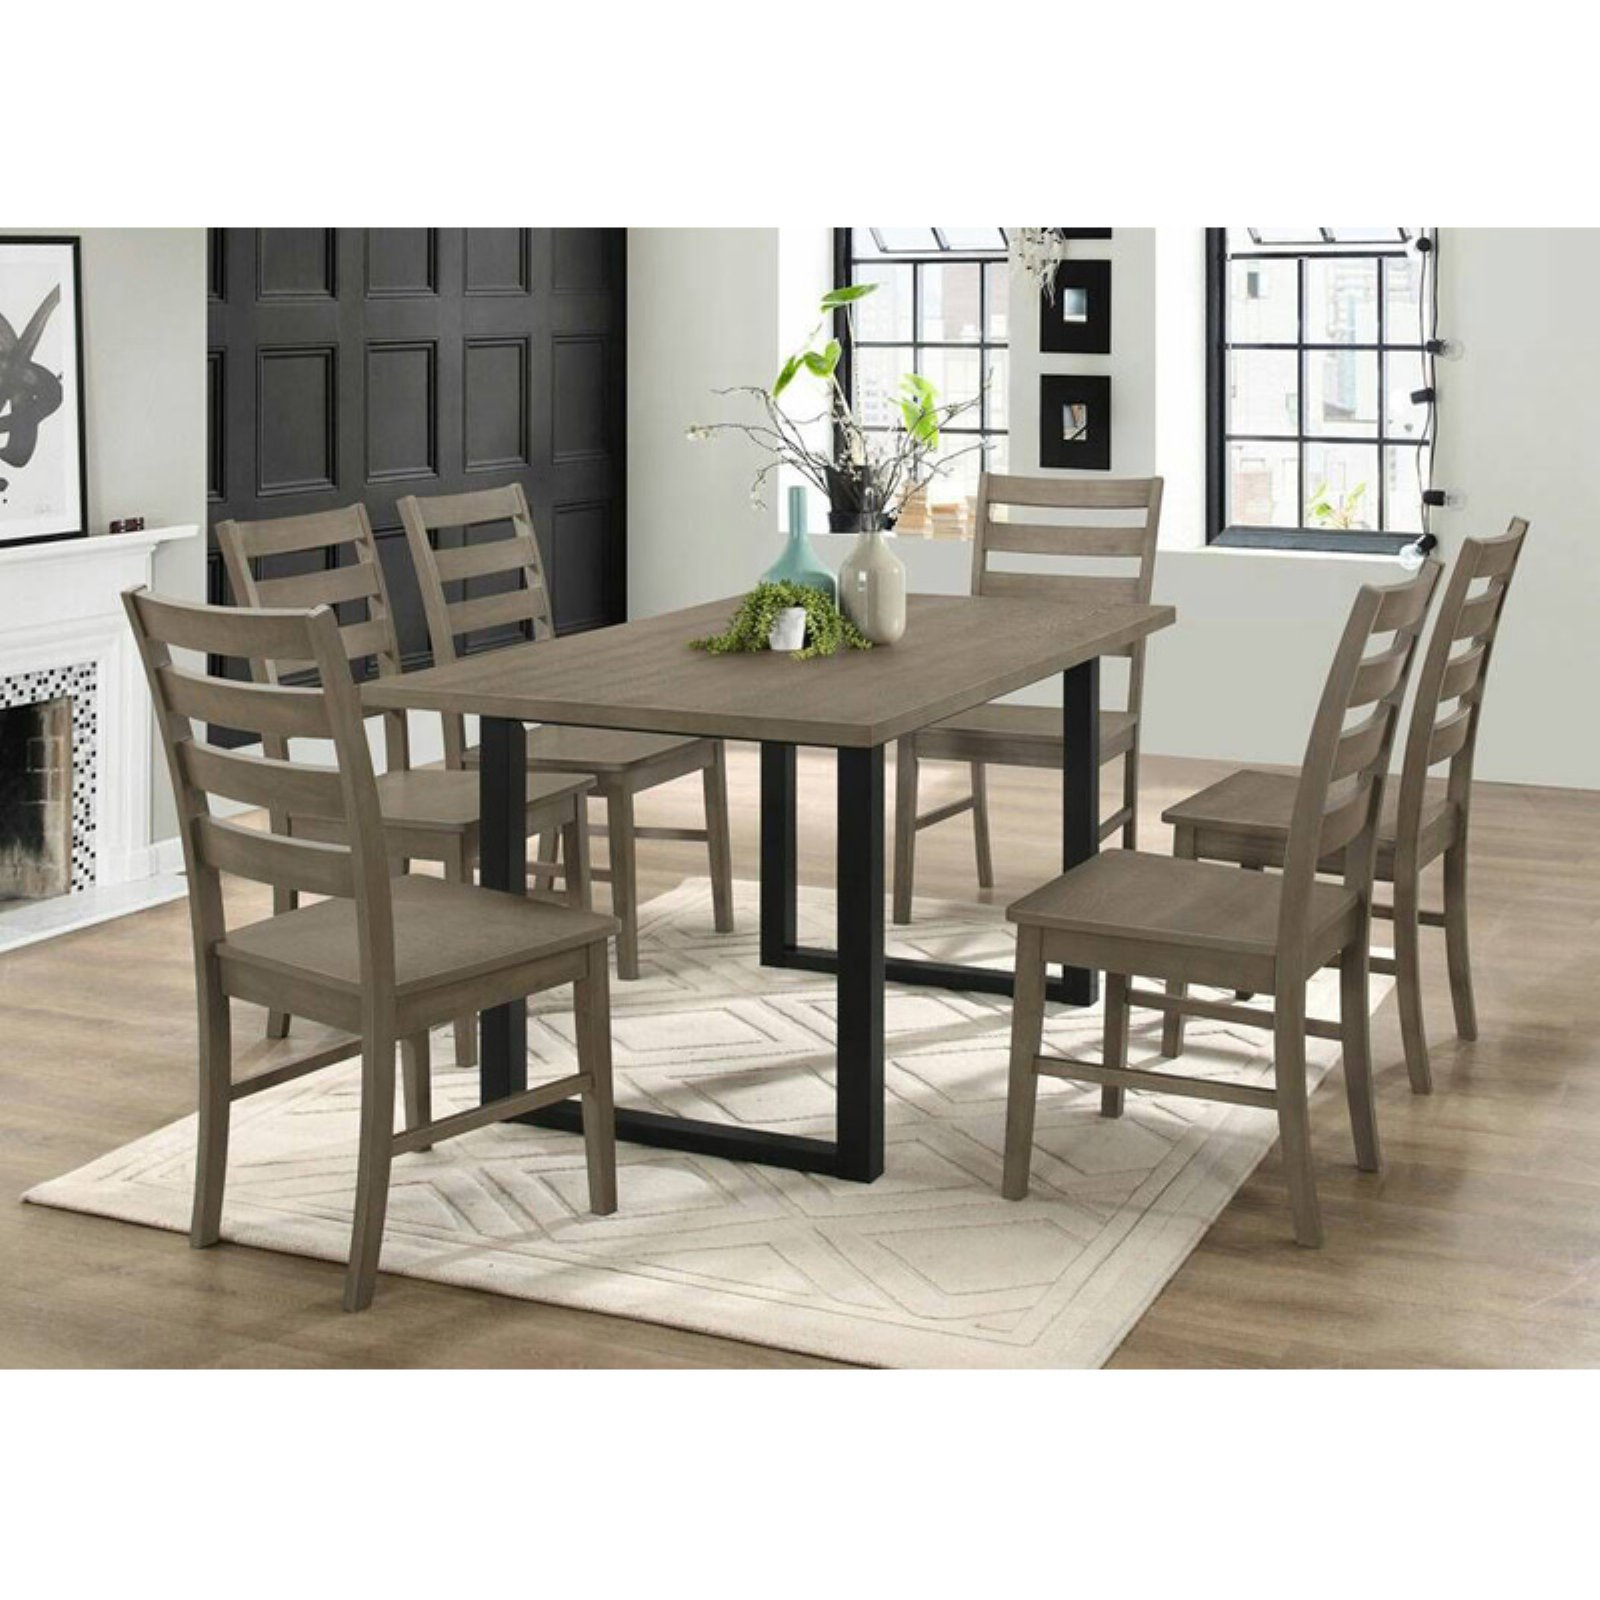 2017 Walker Edison Modern 7 Piece Dining Table Set Grey In 2019 Throughout Kieffer 5 Piece Dining Sets (View 6 of 20)